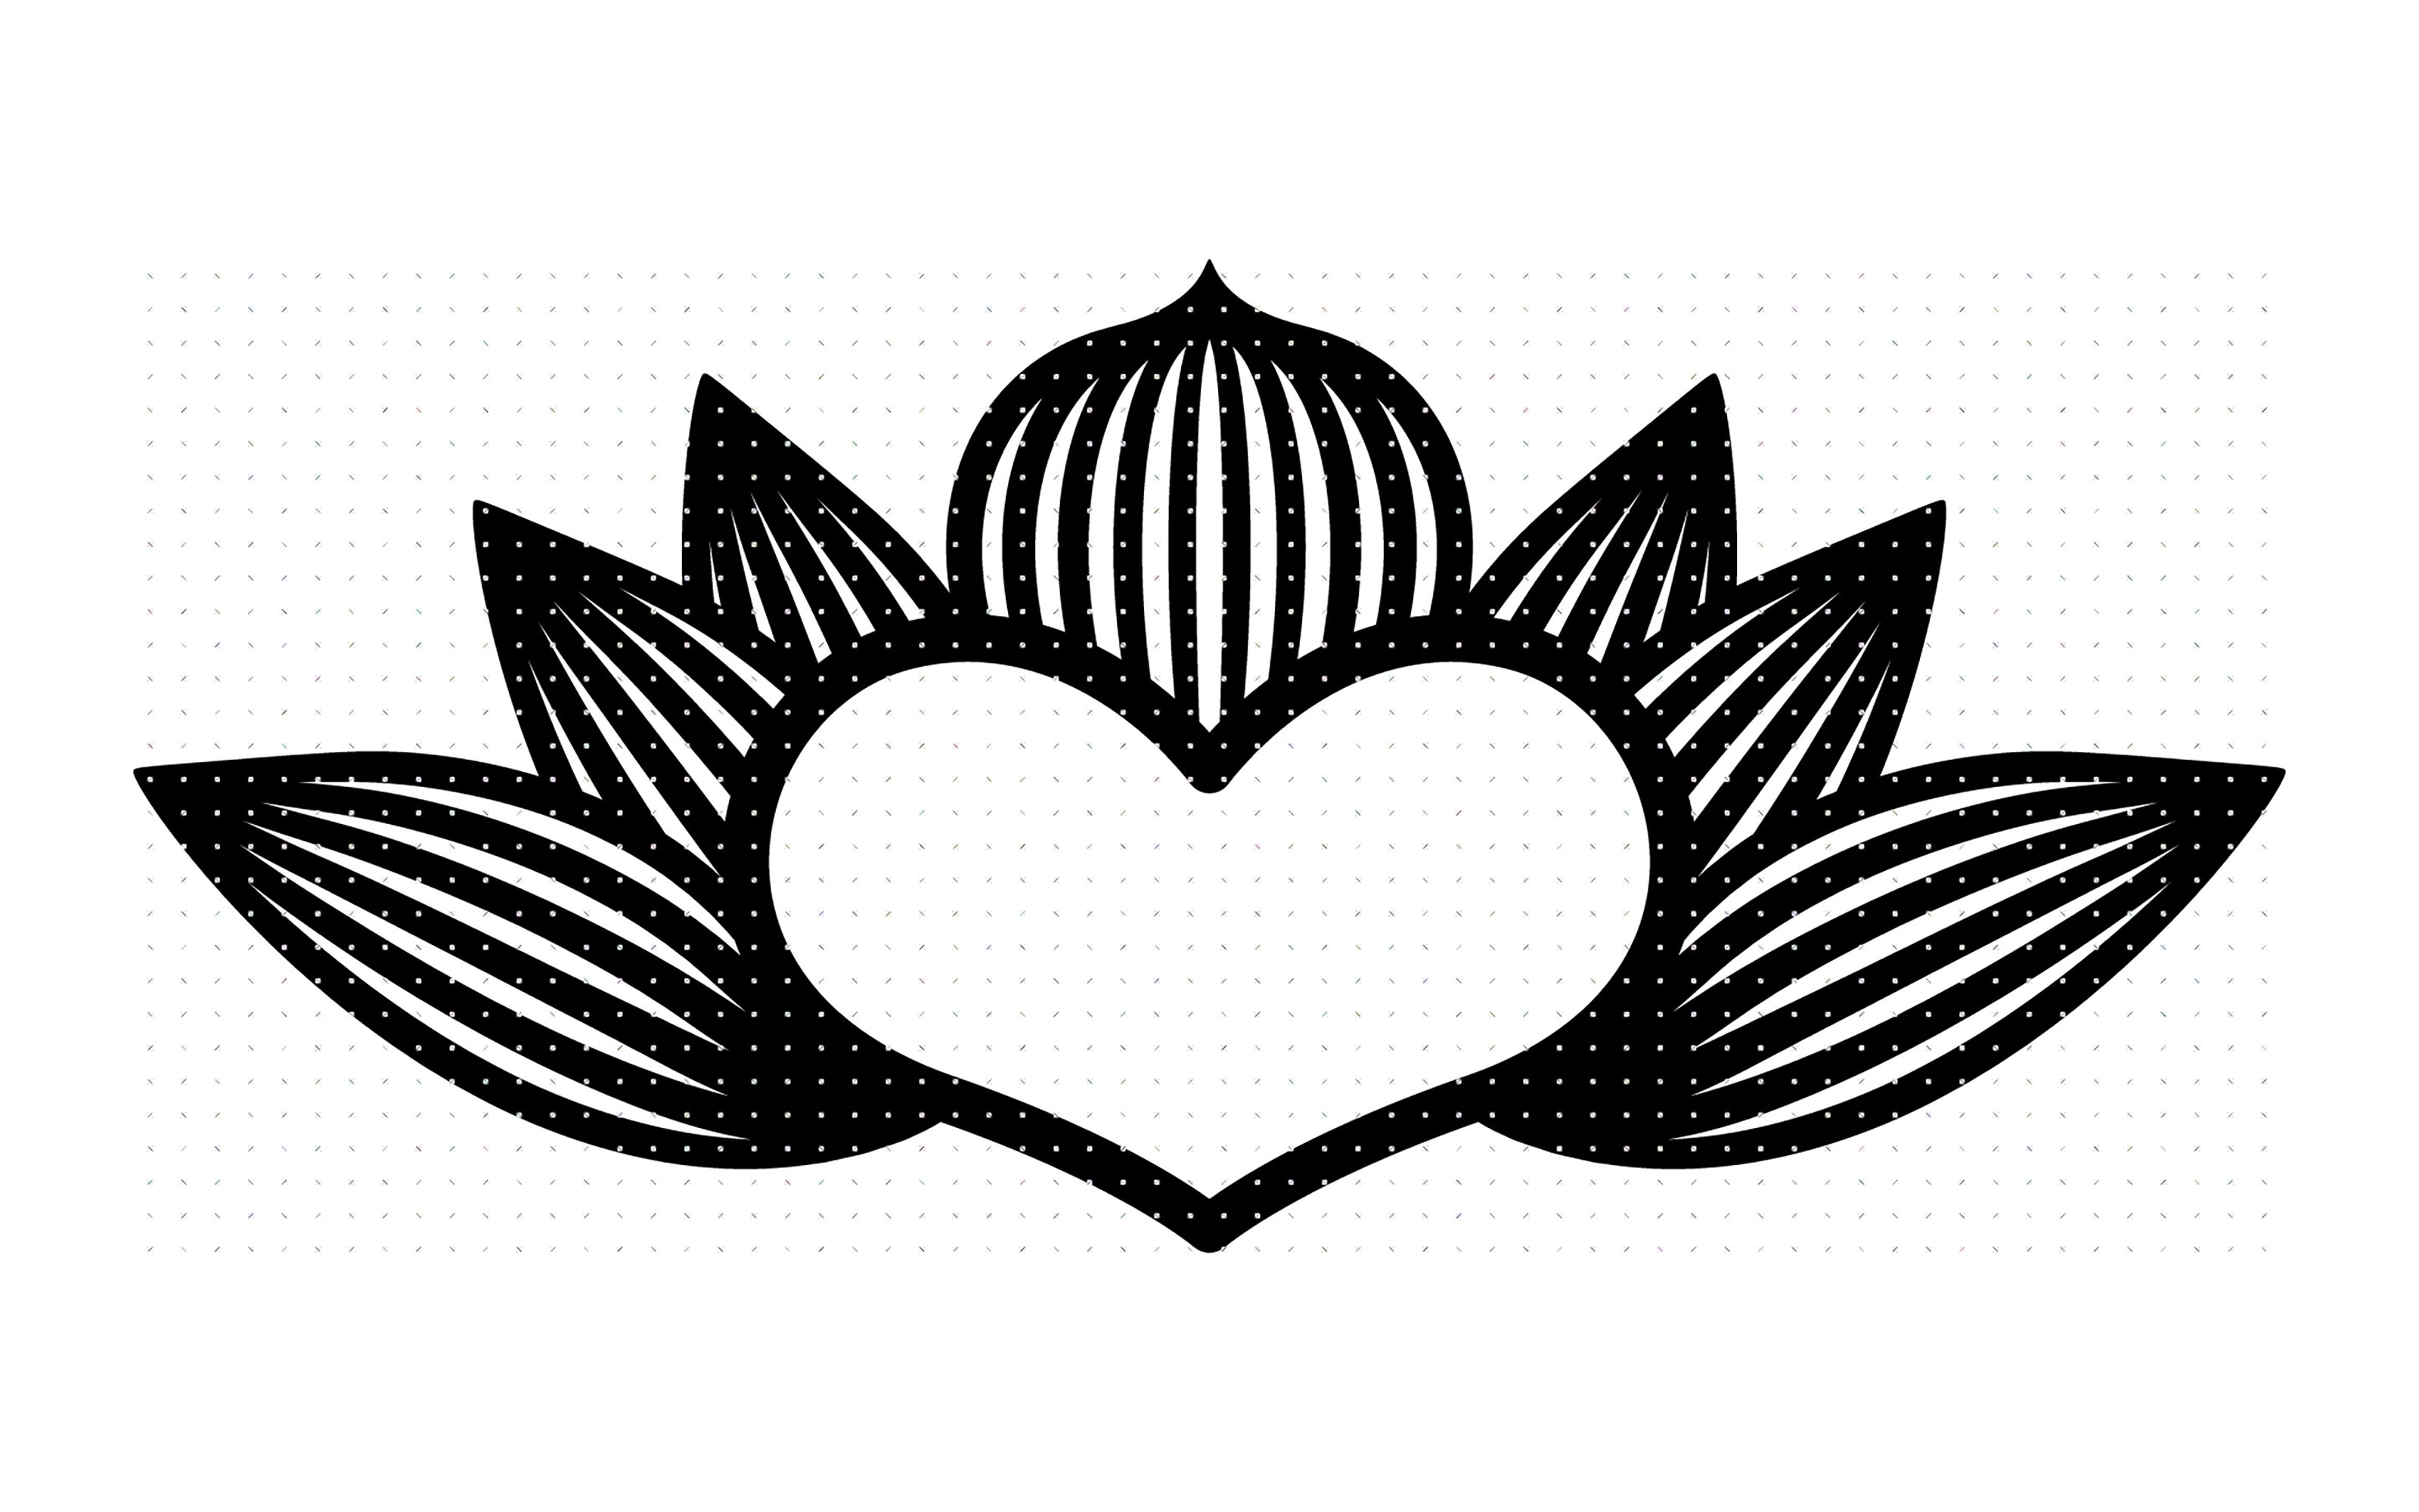 lotus heart flower svg, dxf, vector, eps, clipart, cricut.